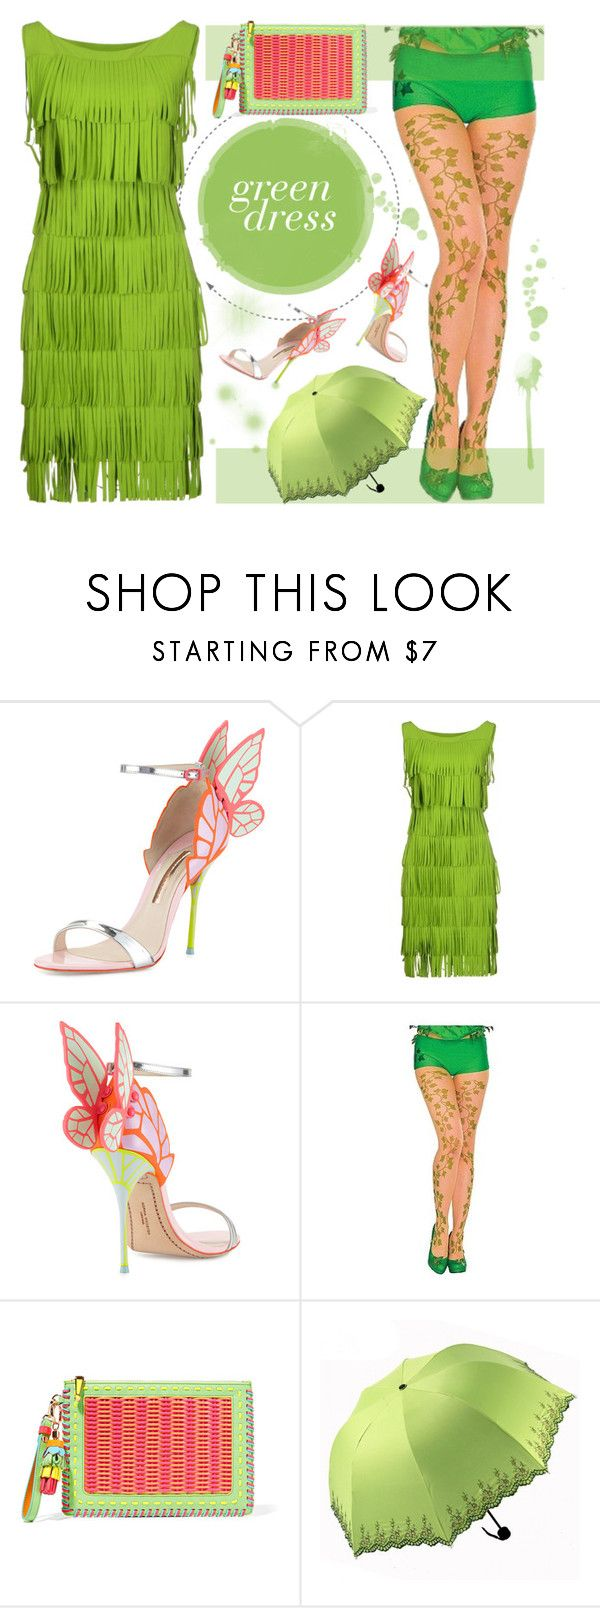 """""""Green dress"""" by crochetnecklaces ❤ liked on Polyvore featuring Sophia Webster and La Petite Robe di Chiara Boni"""